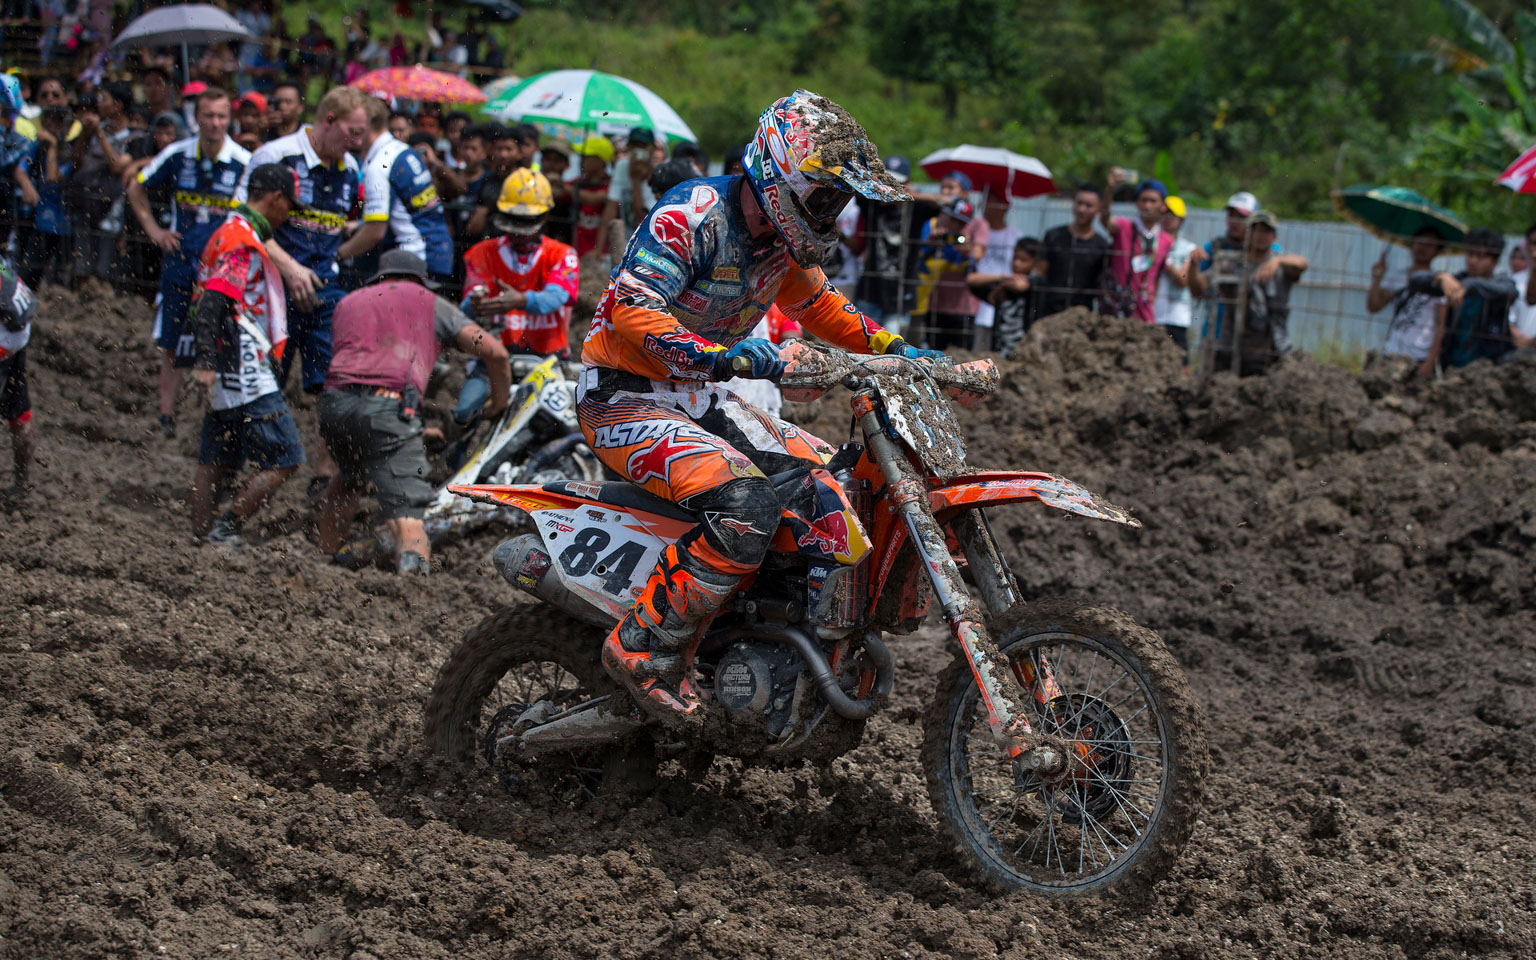 The mud of Indonesia was tough for the current MX2 world champ